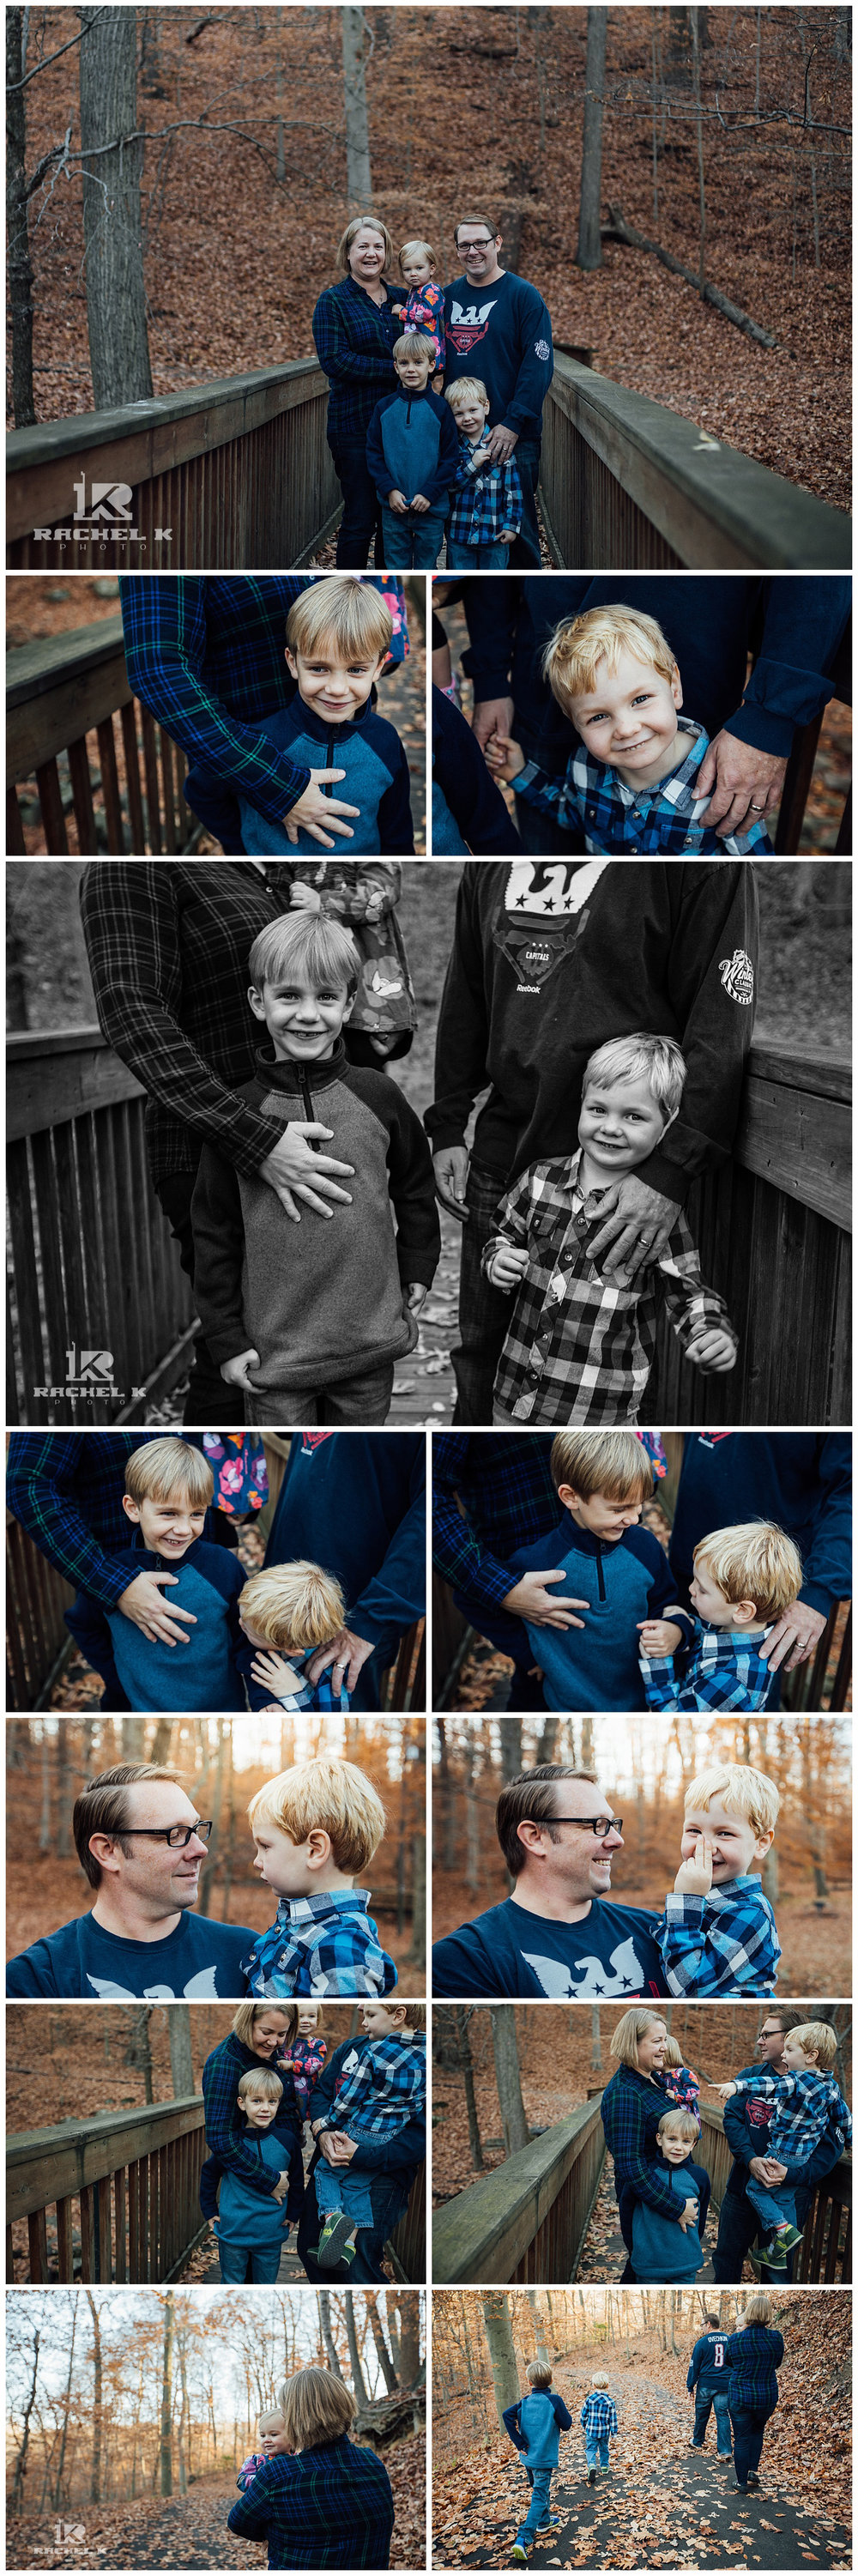 Fairfax county winter family session with three kids by Rachel K Photo